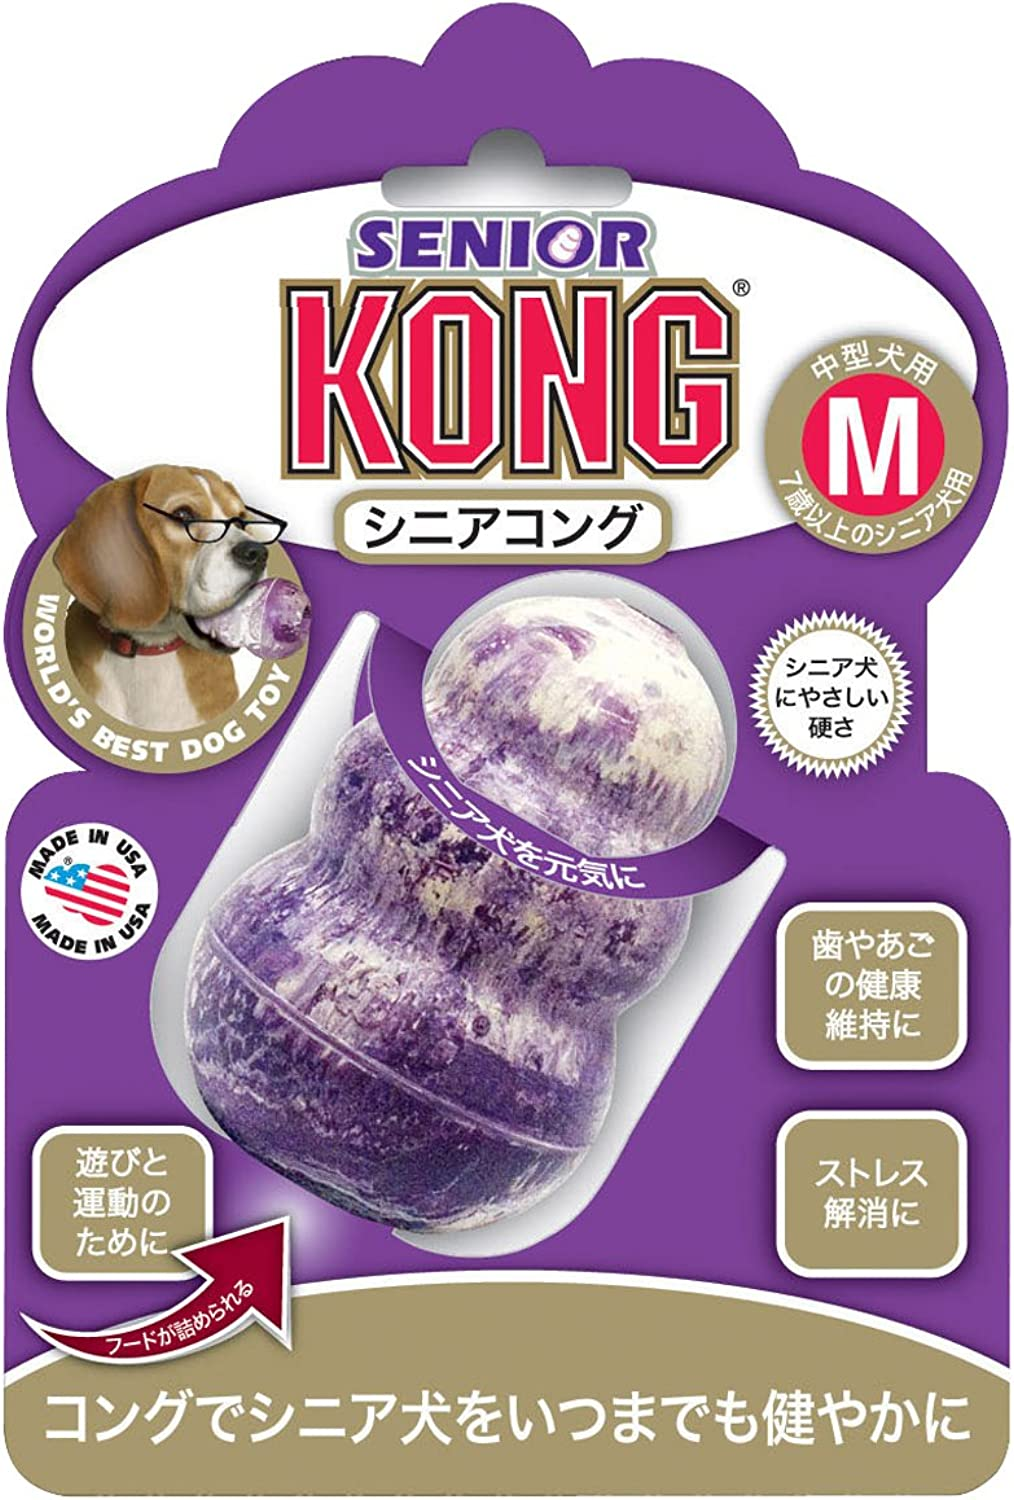 Kong Senior Kong M (japan import)